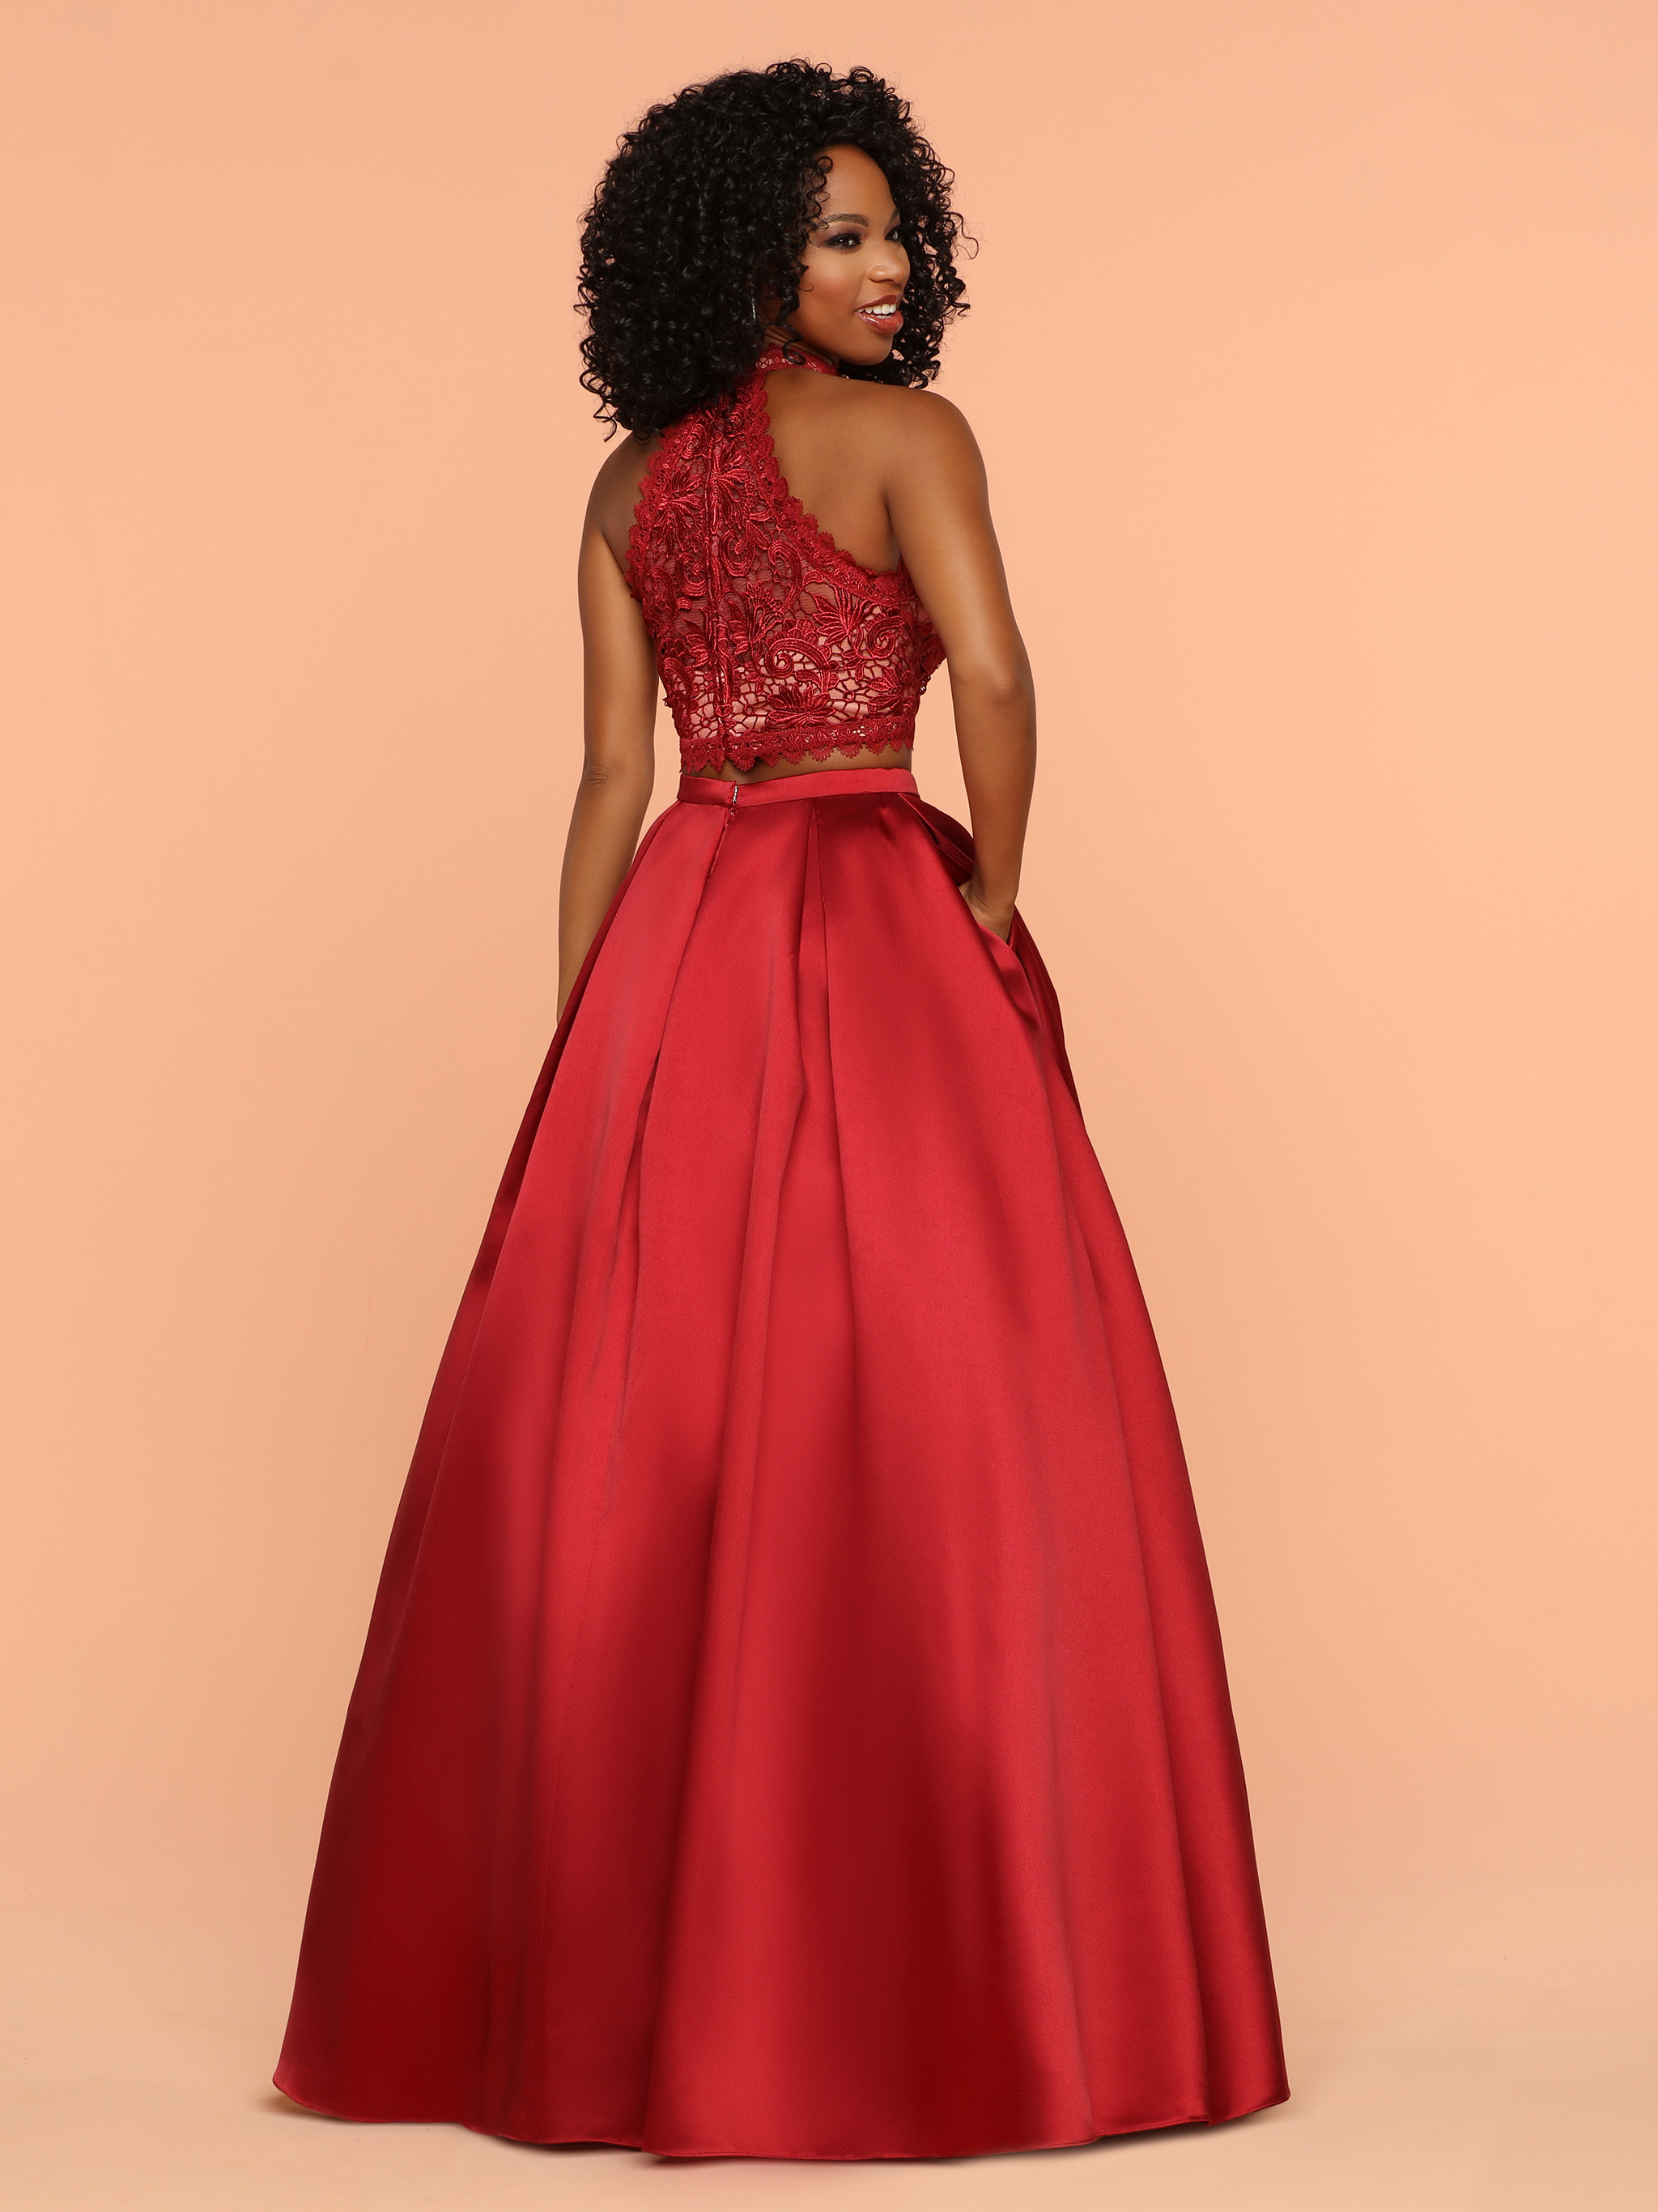 Image showing back view of style #71887